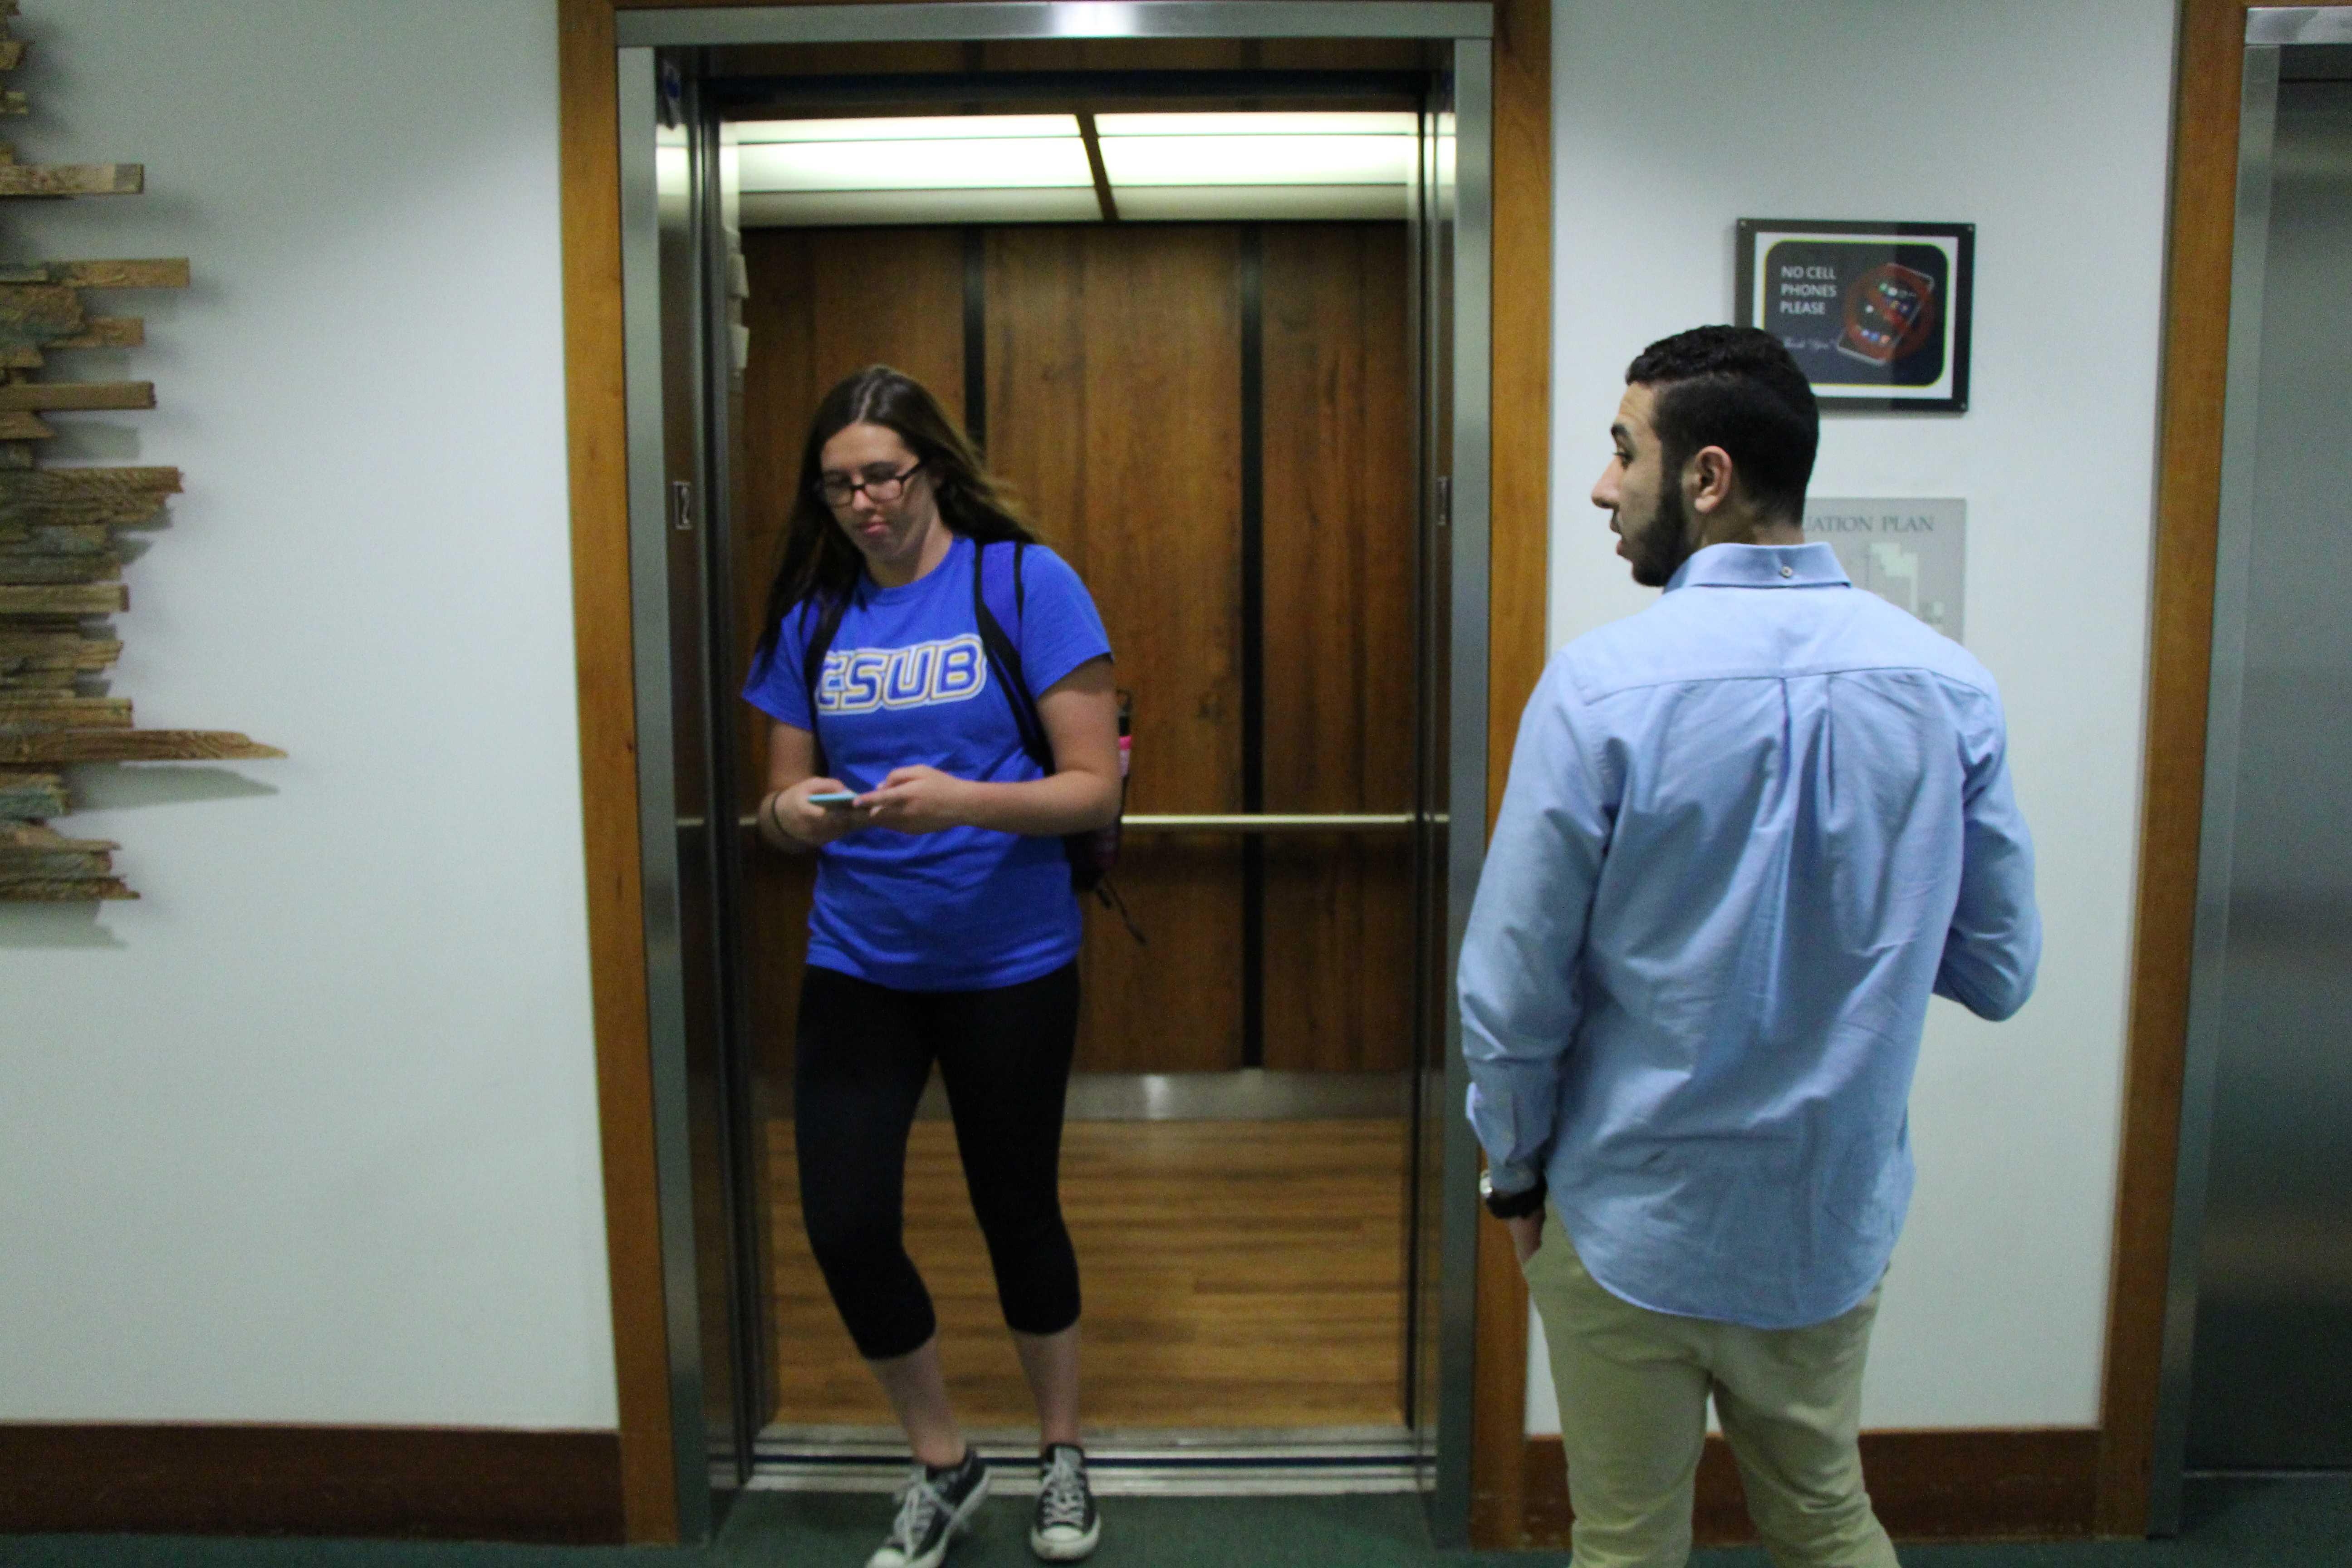 Elevator action on campus